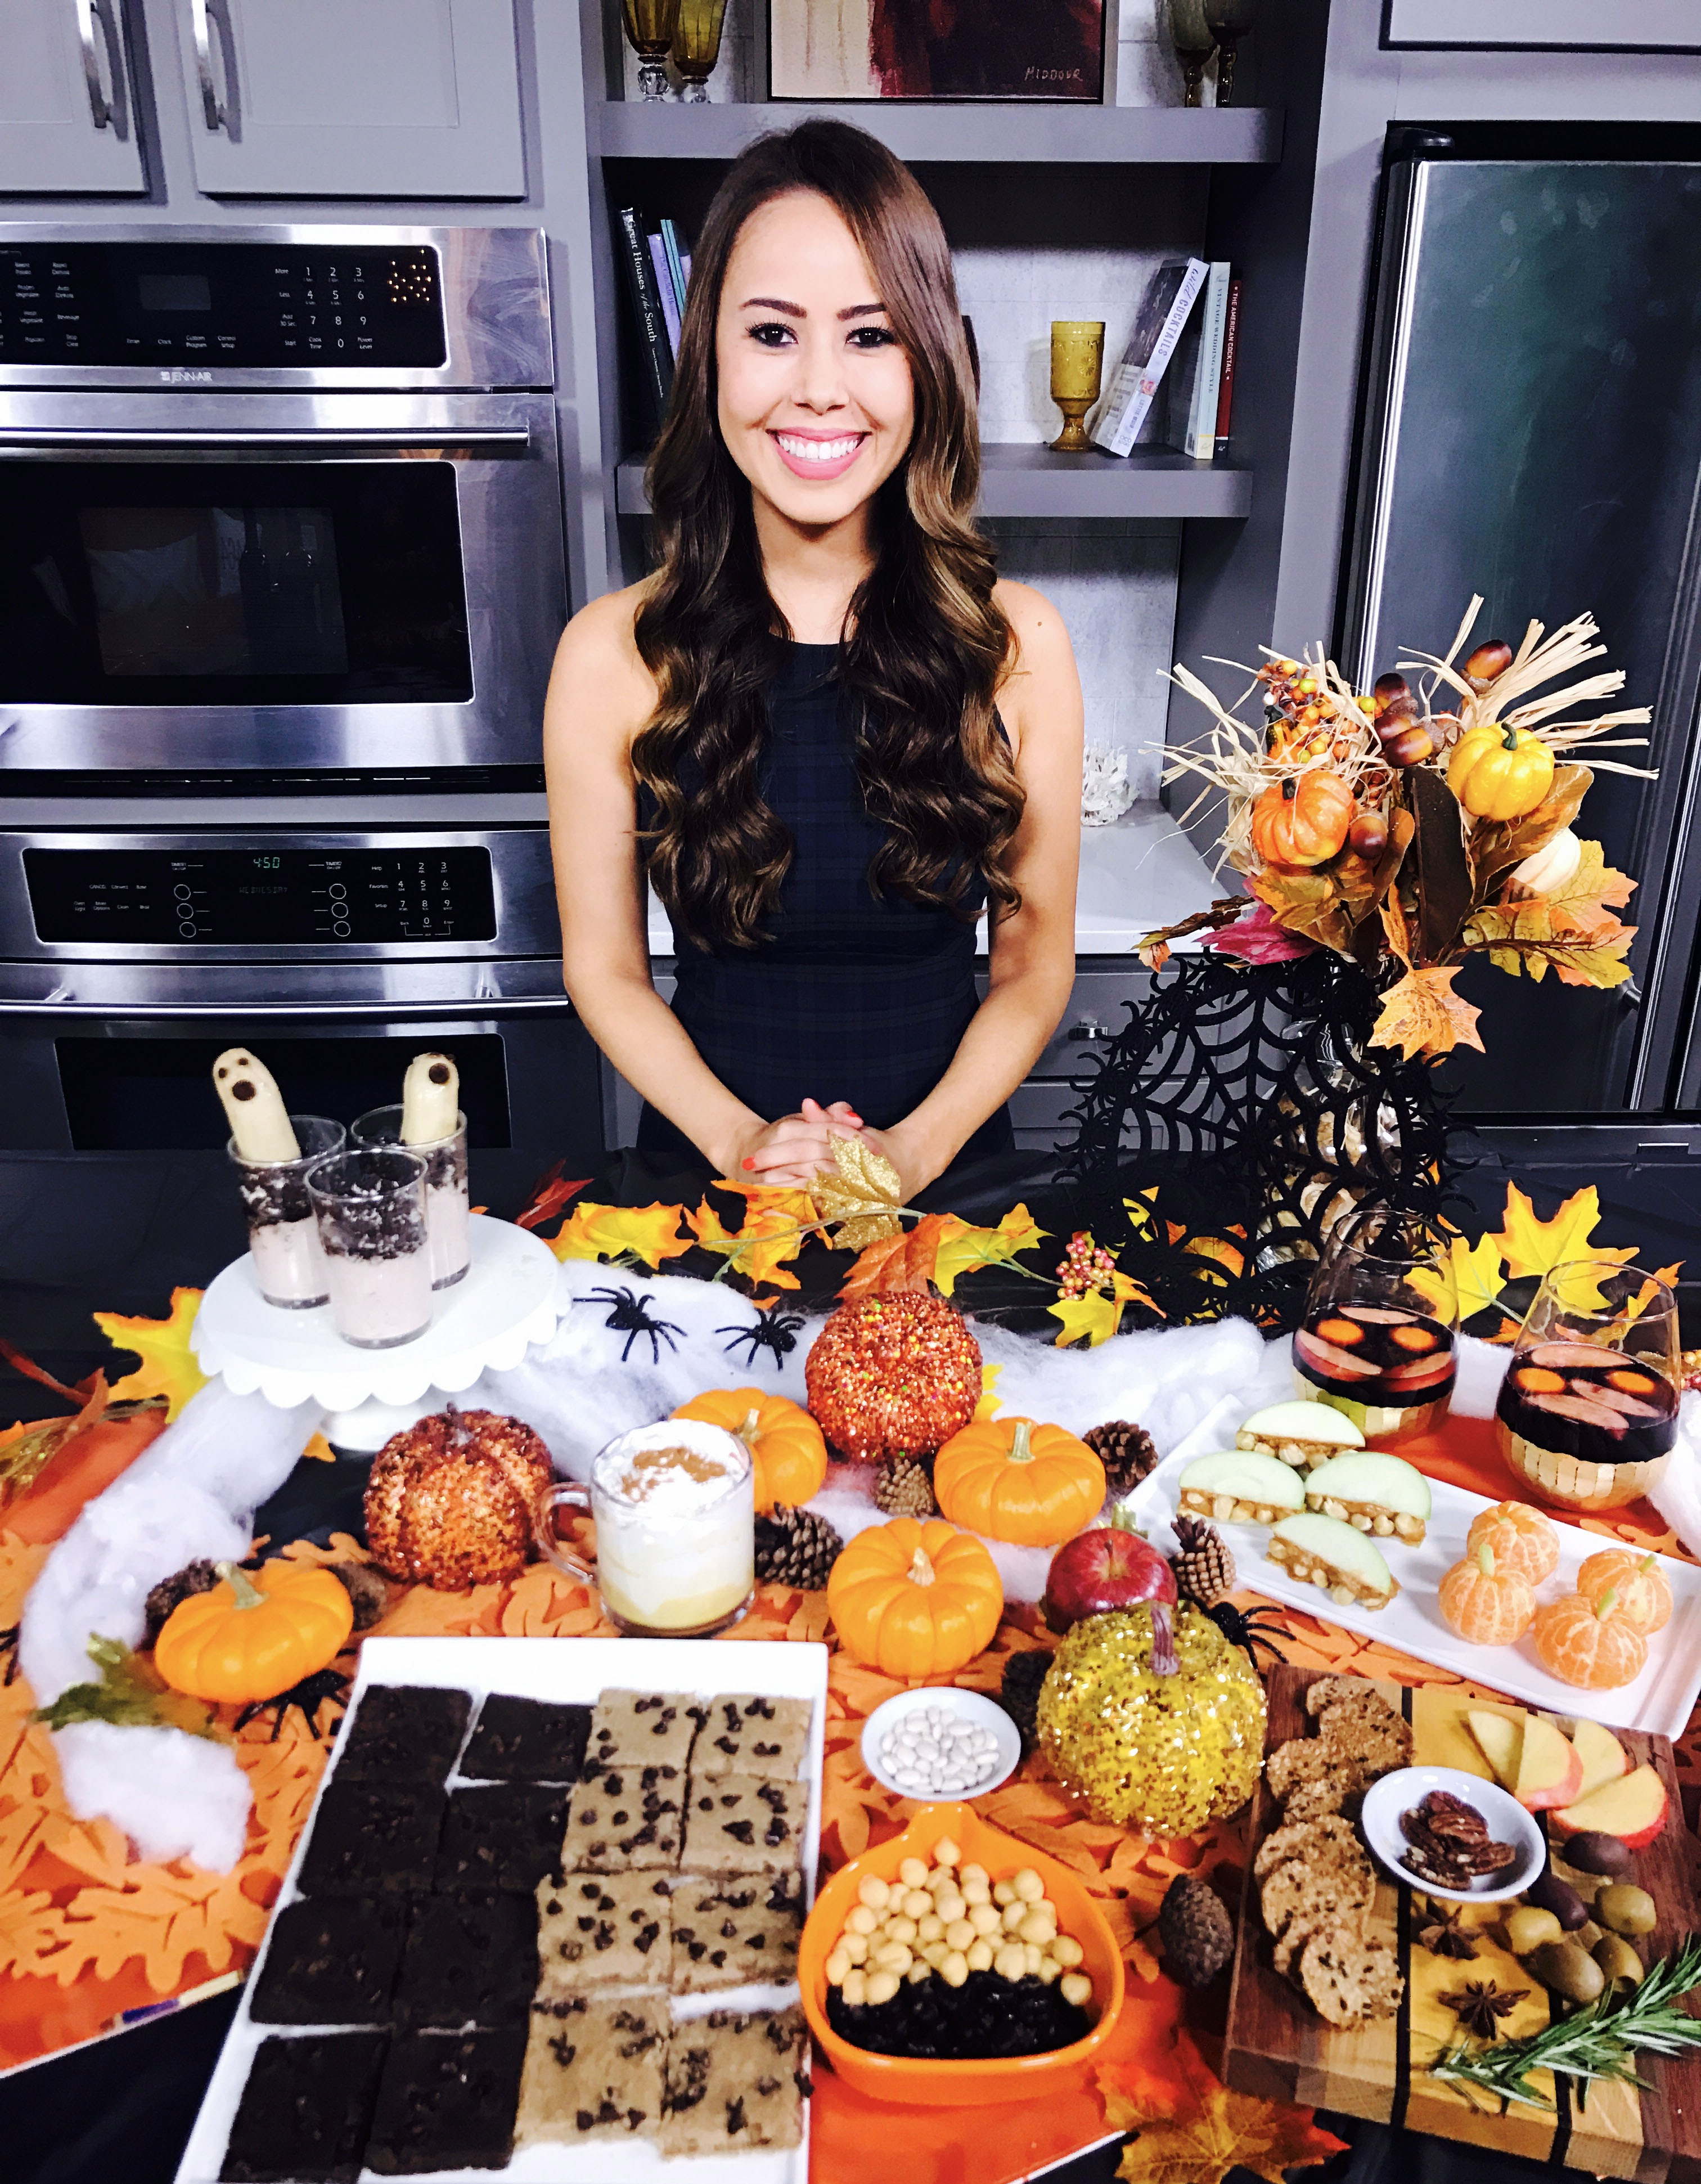 Mia Syn Registered Dietitian TV Nutritionist